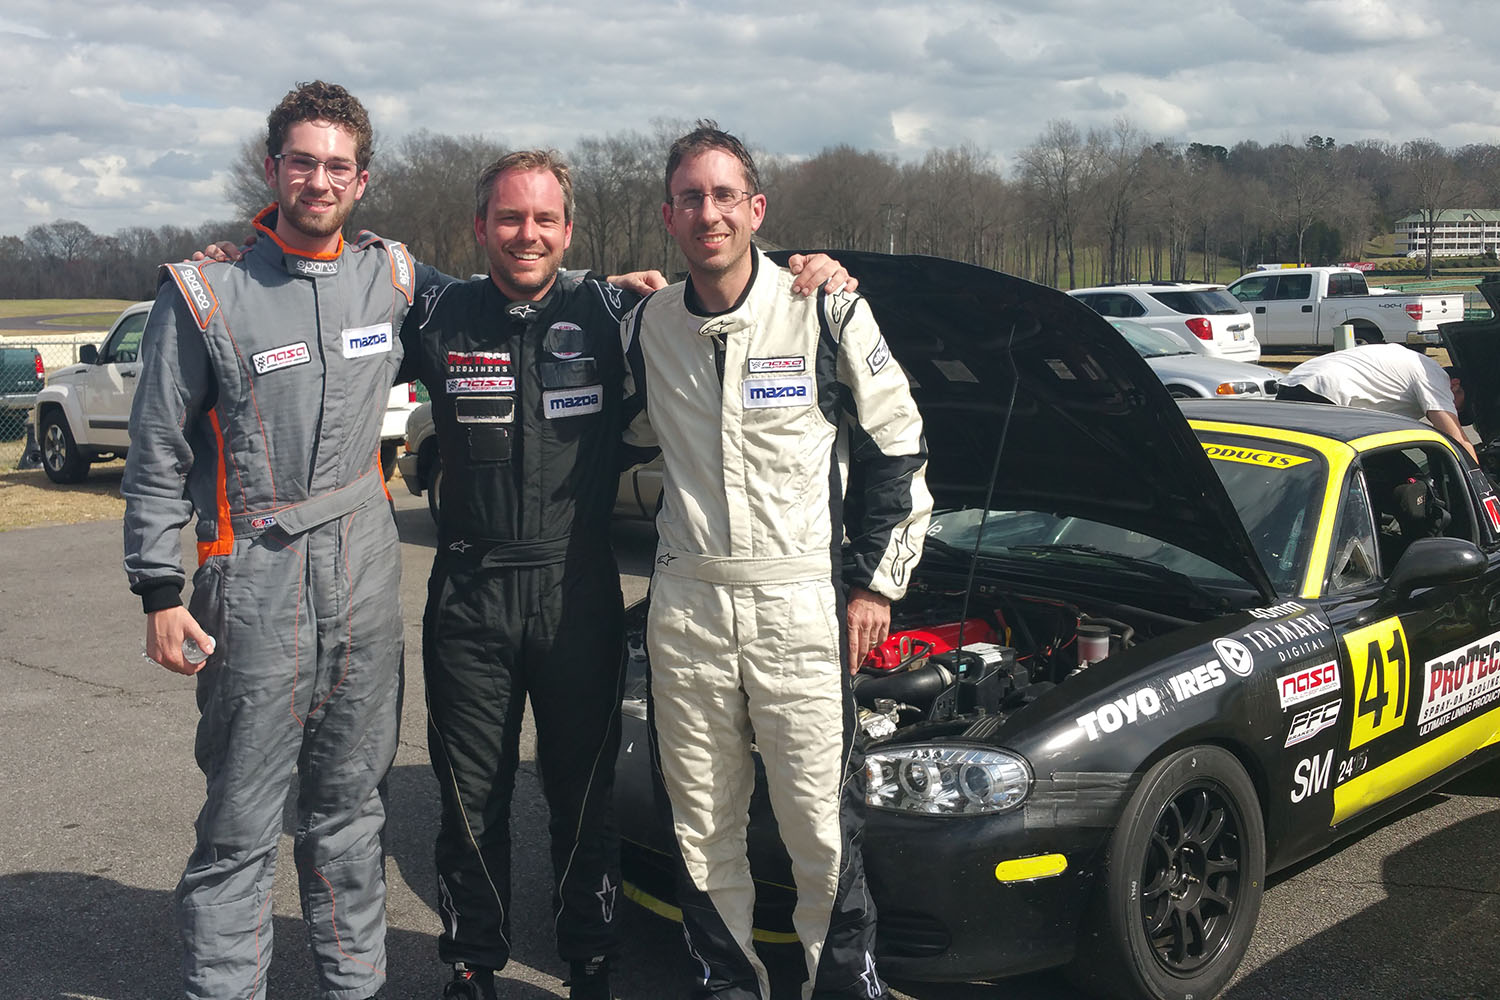 Jason Connole, Brian Henderson and Duncan Ellis podium in Spec Miata at NASA VIR March Madness 2017